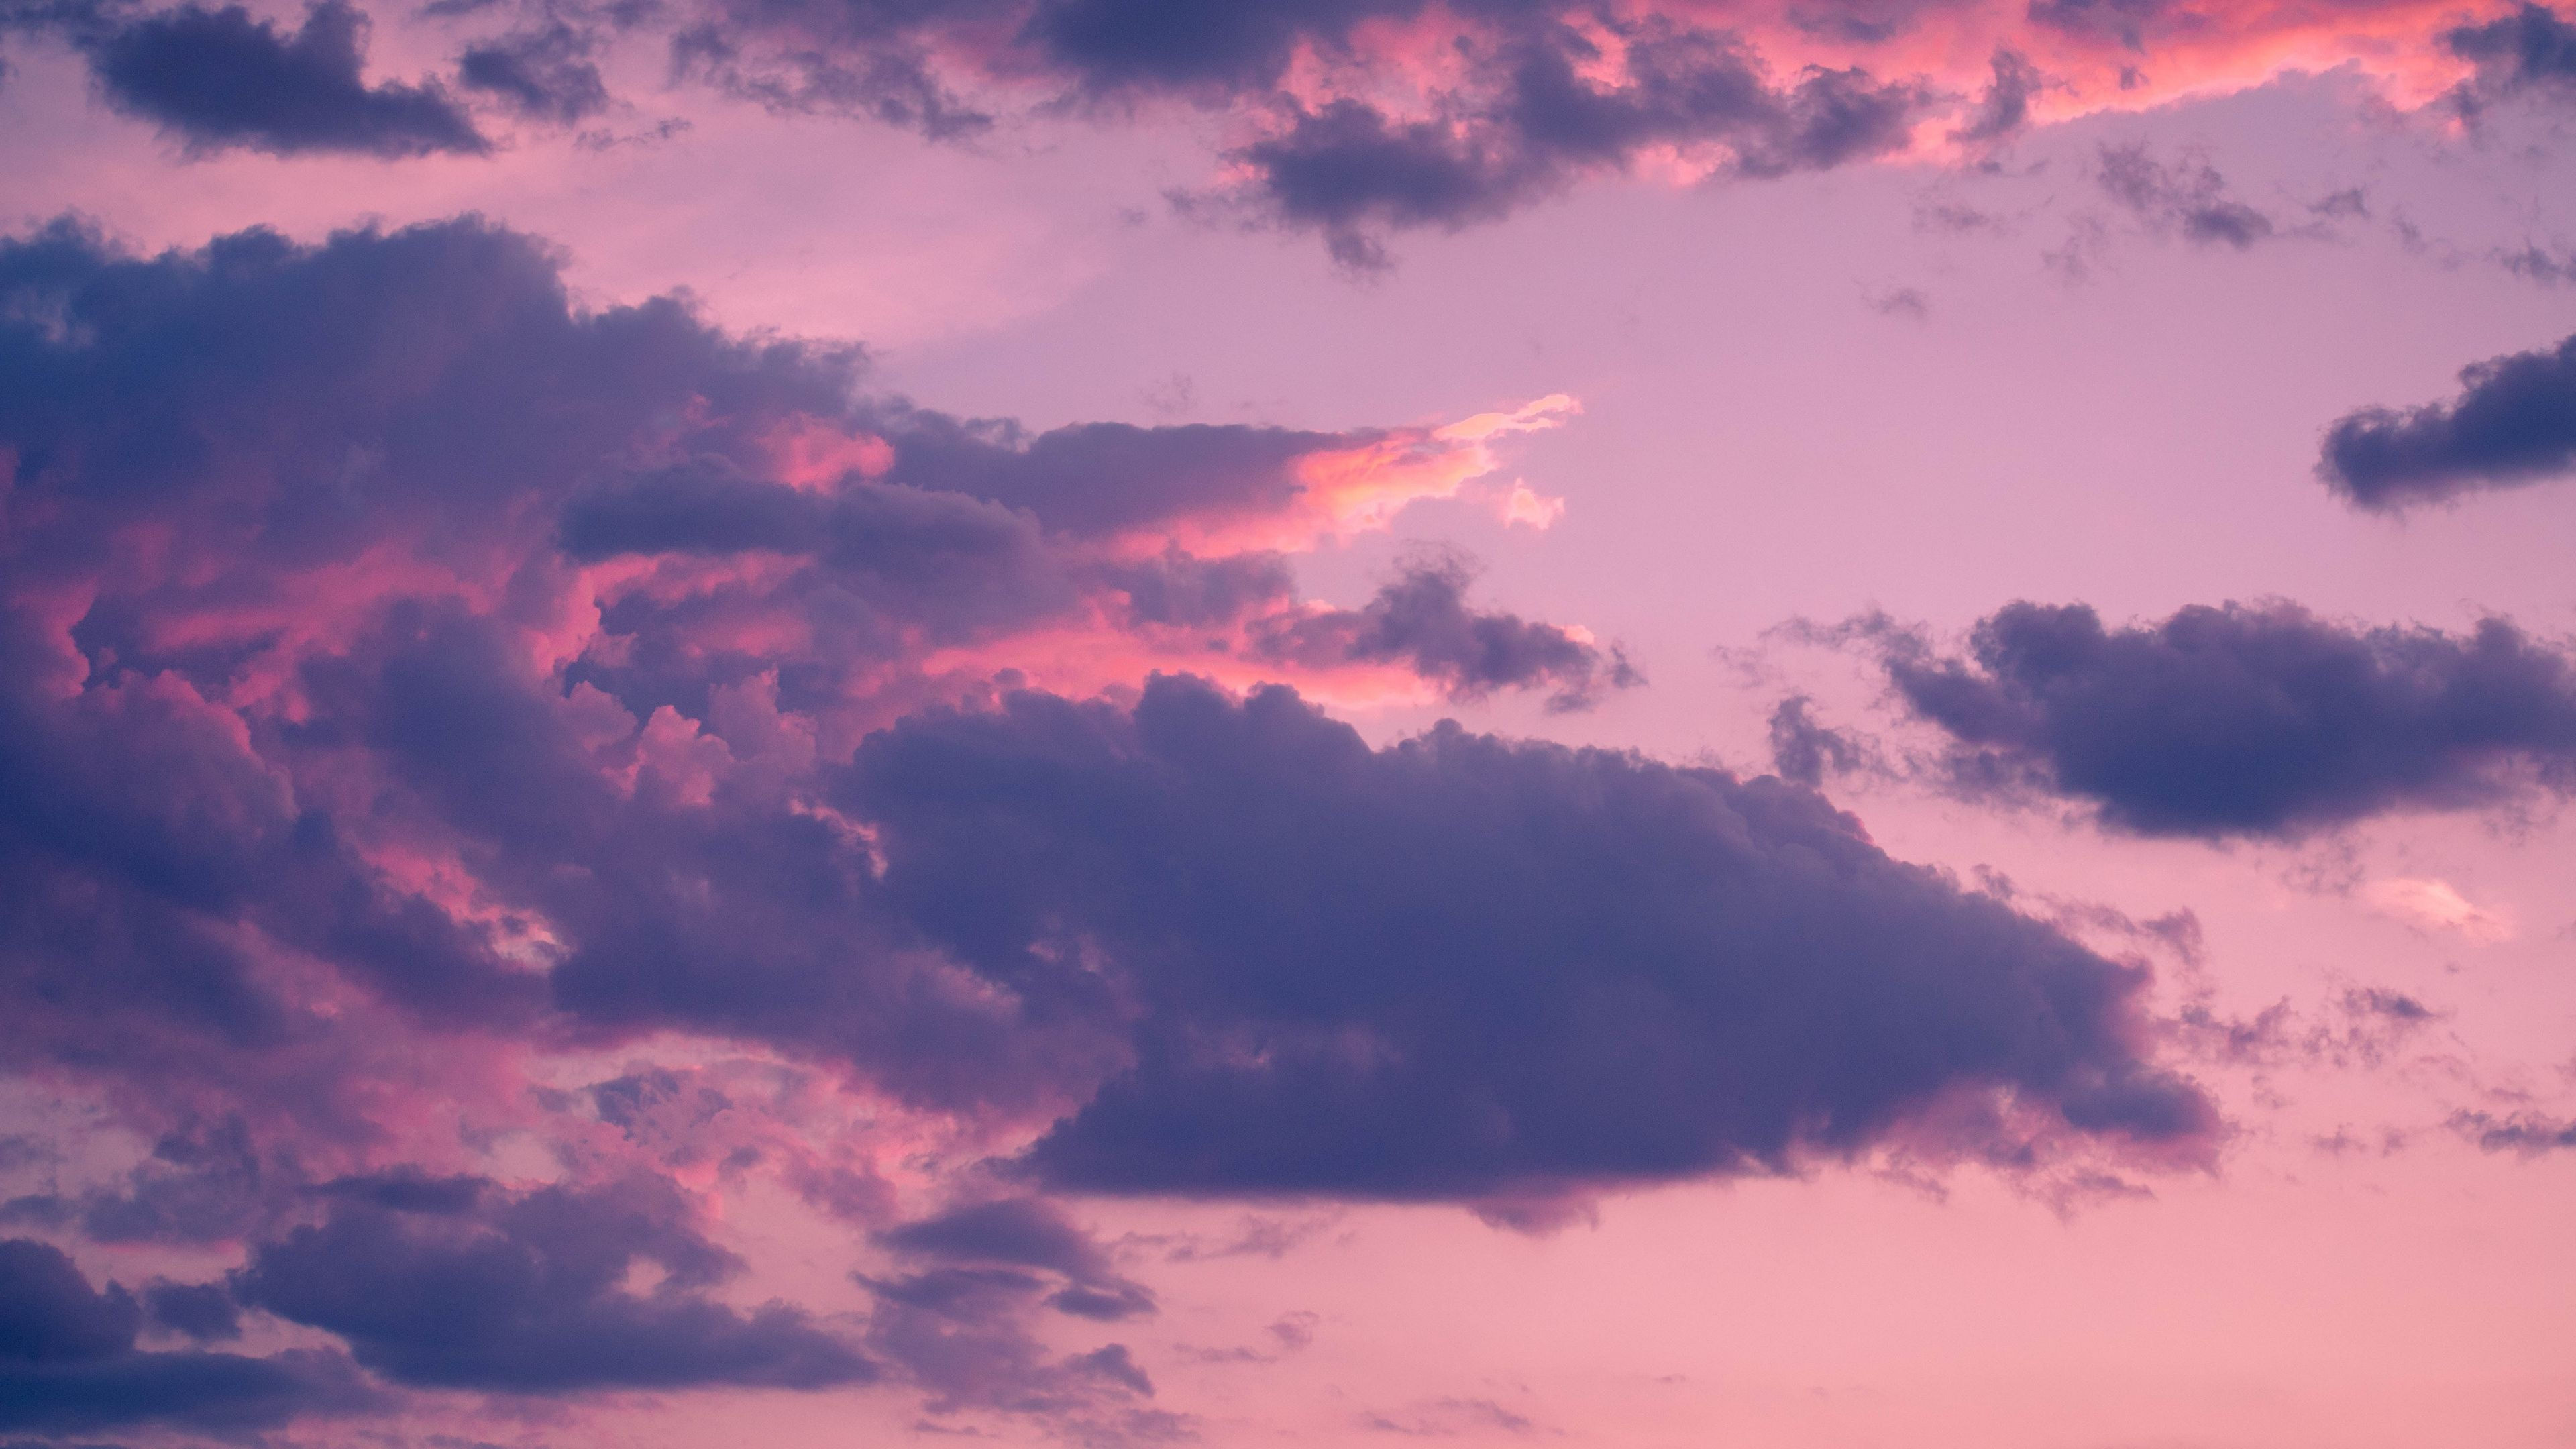 Clouds Aesthetic Wallpapers Top Free Clouds Aesthetic